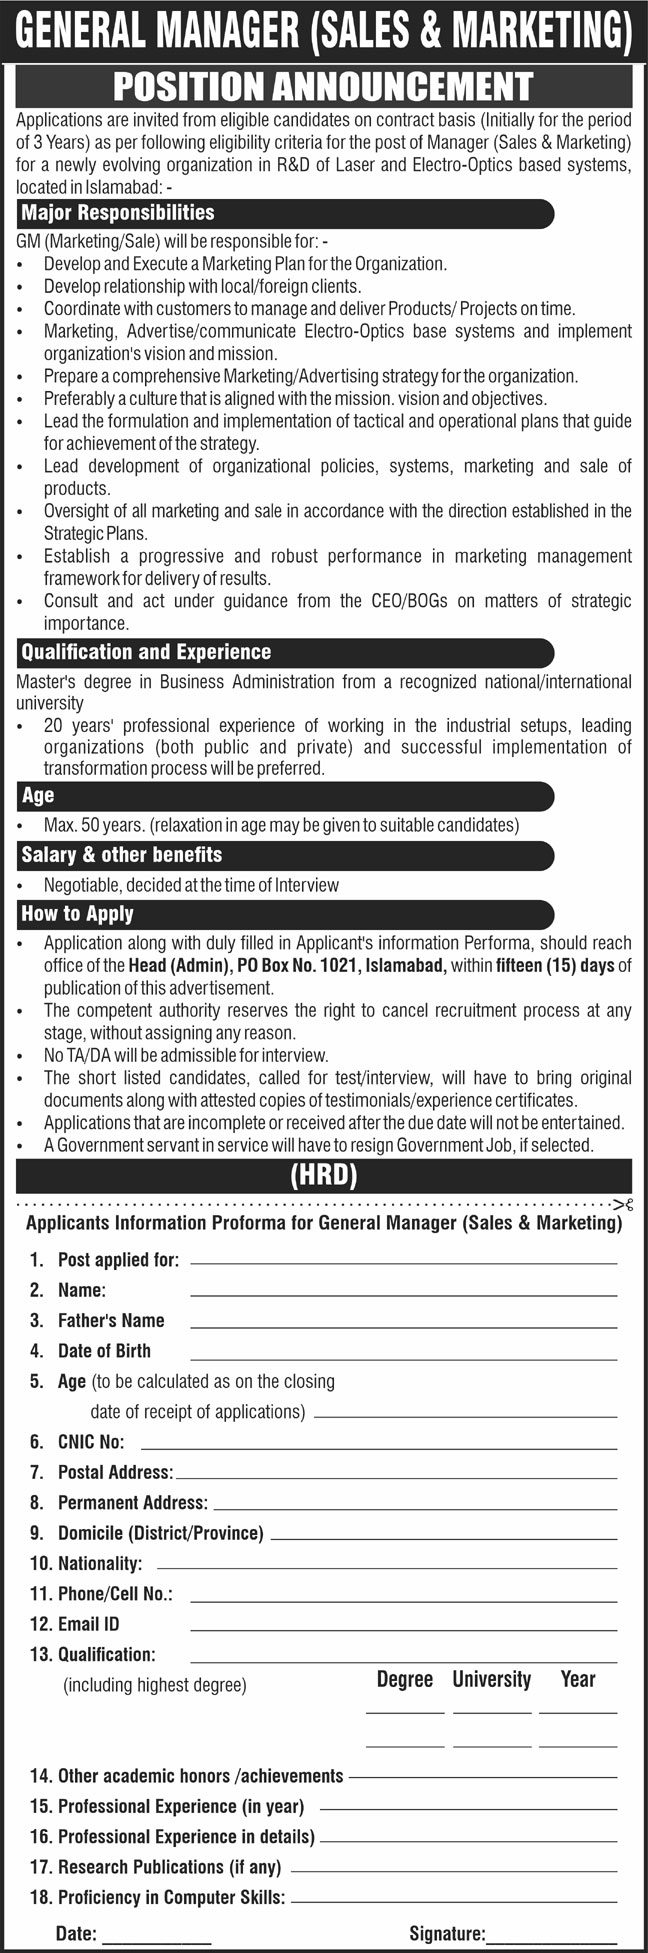 Organization in R&D of Laser and Electro Optics Based Systems PO Box 1021 Islamabad Jobs 2021 in Pakistan